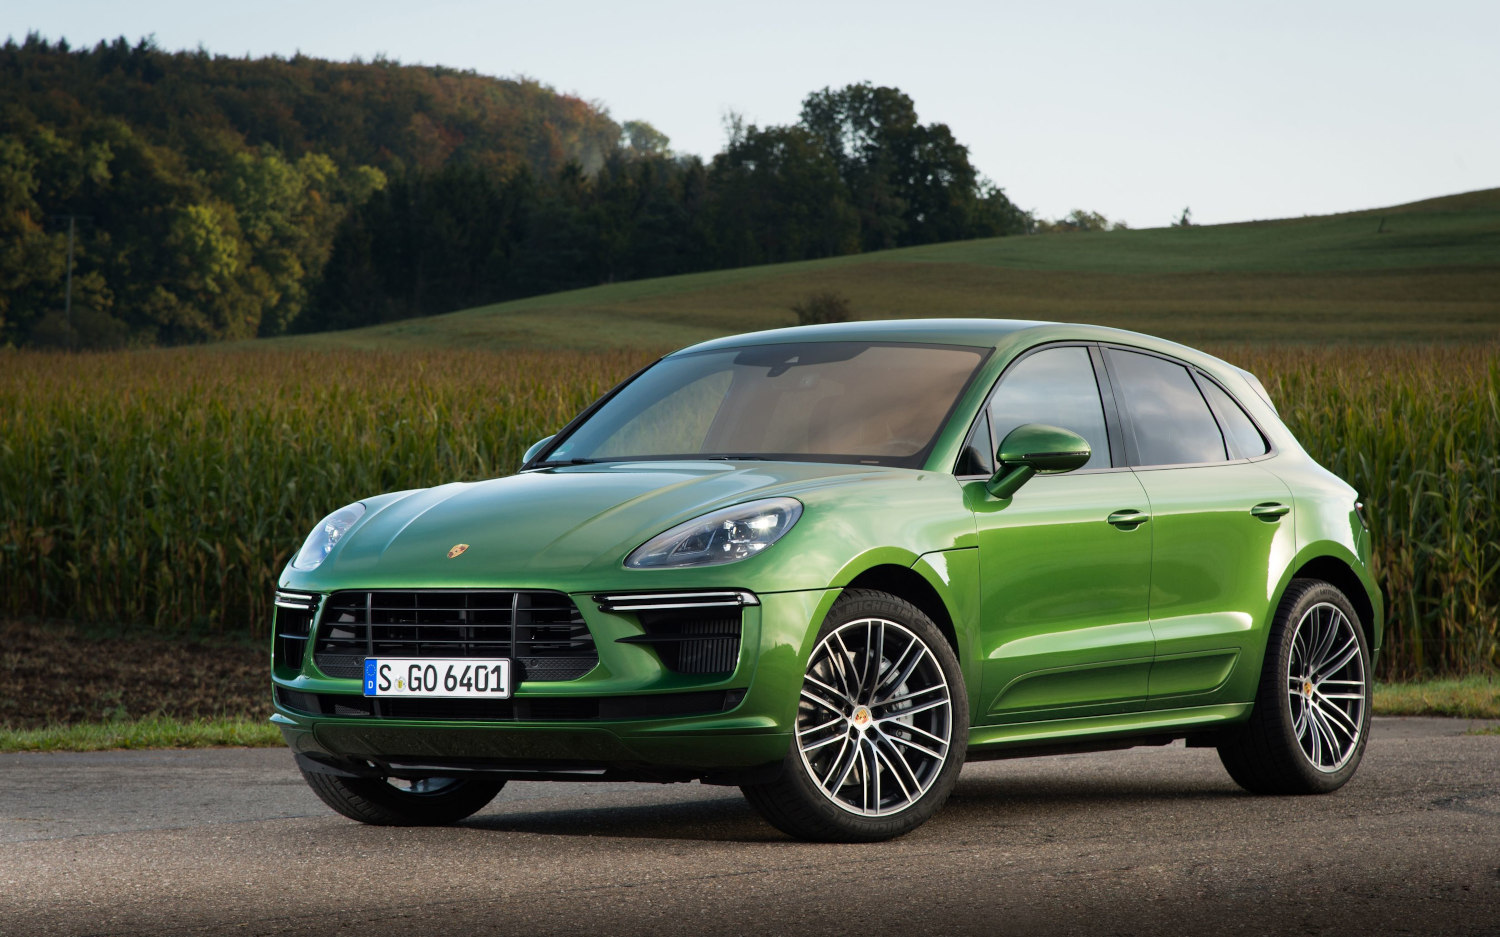 45 angle front Porsche Macan Turbo 2020